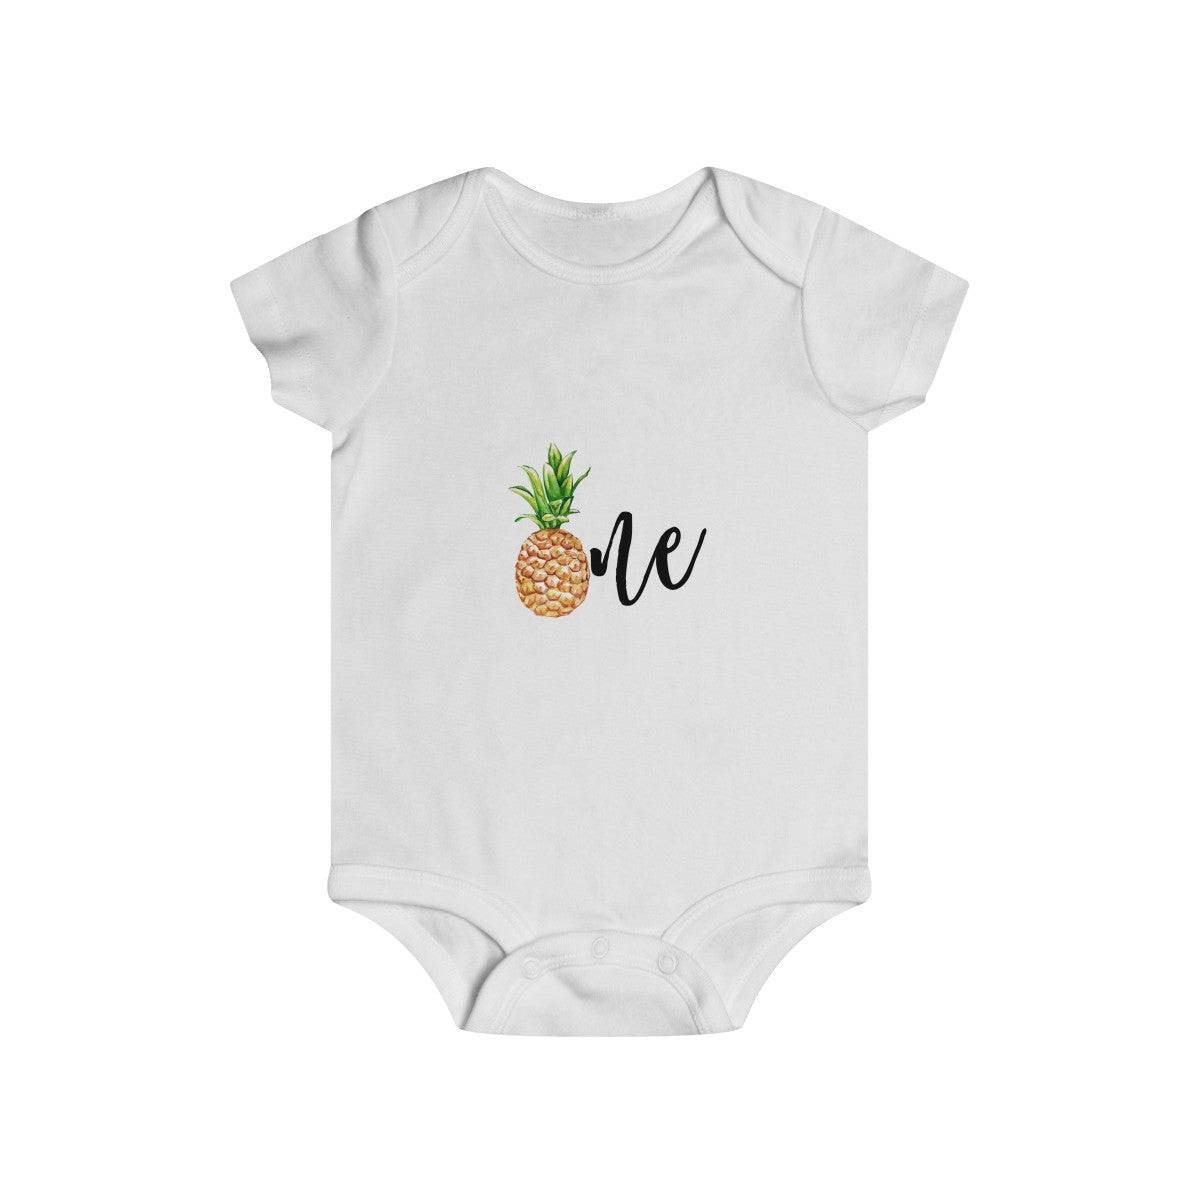 Pineapple Baby ONE bodysuit - Mermaids and Minis